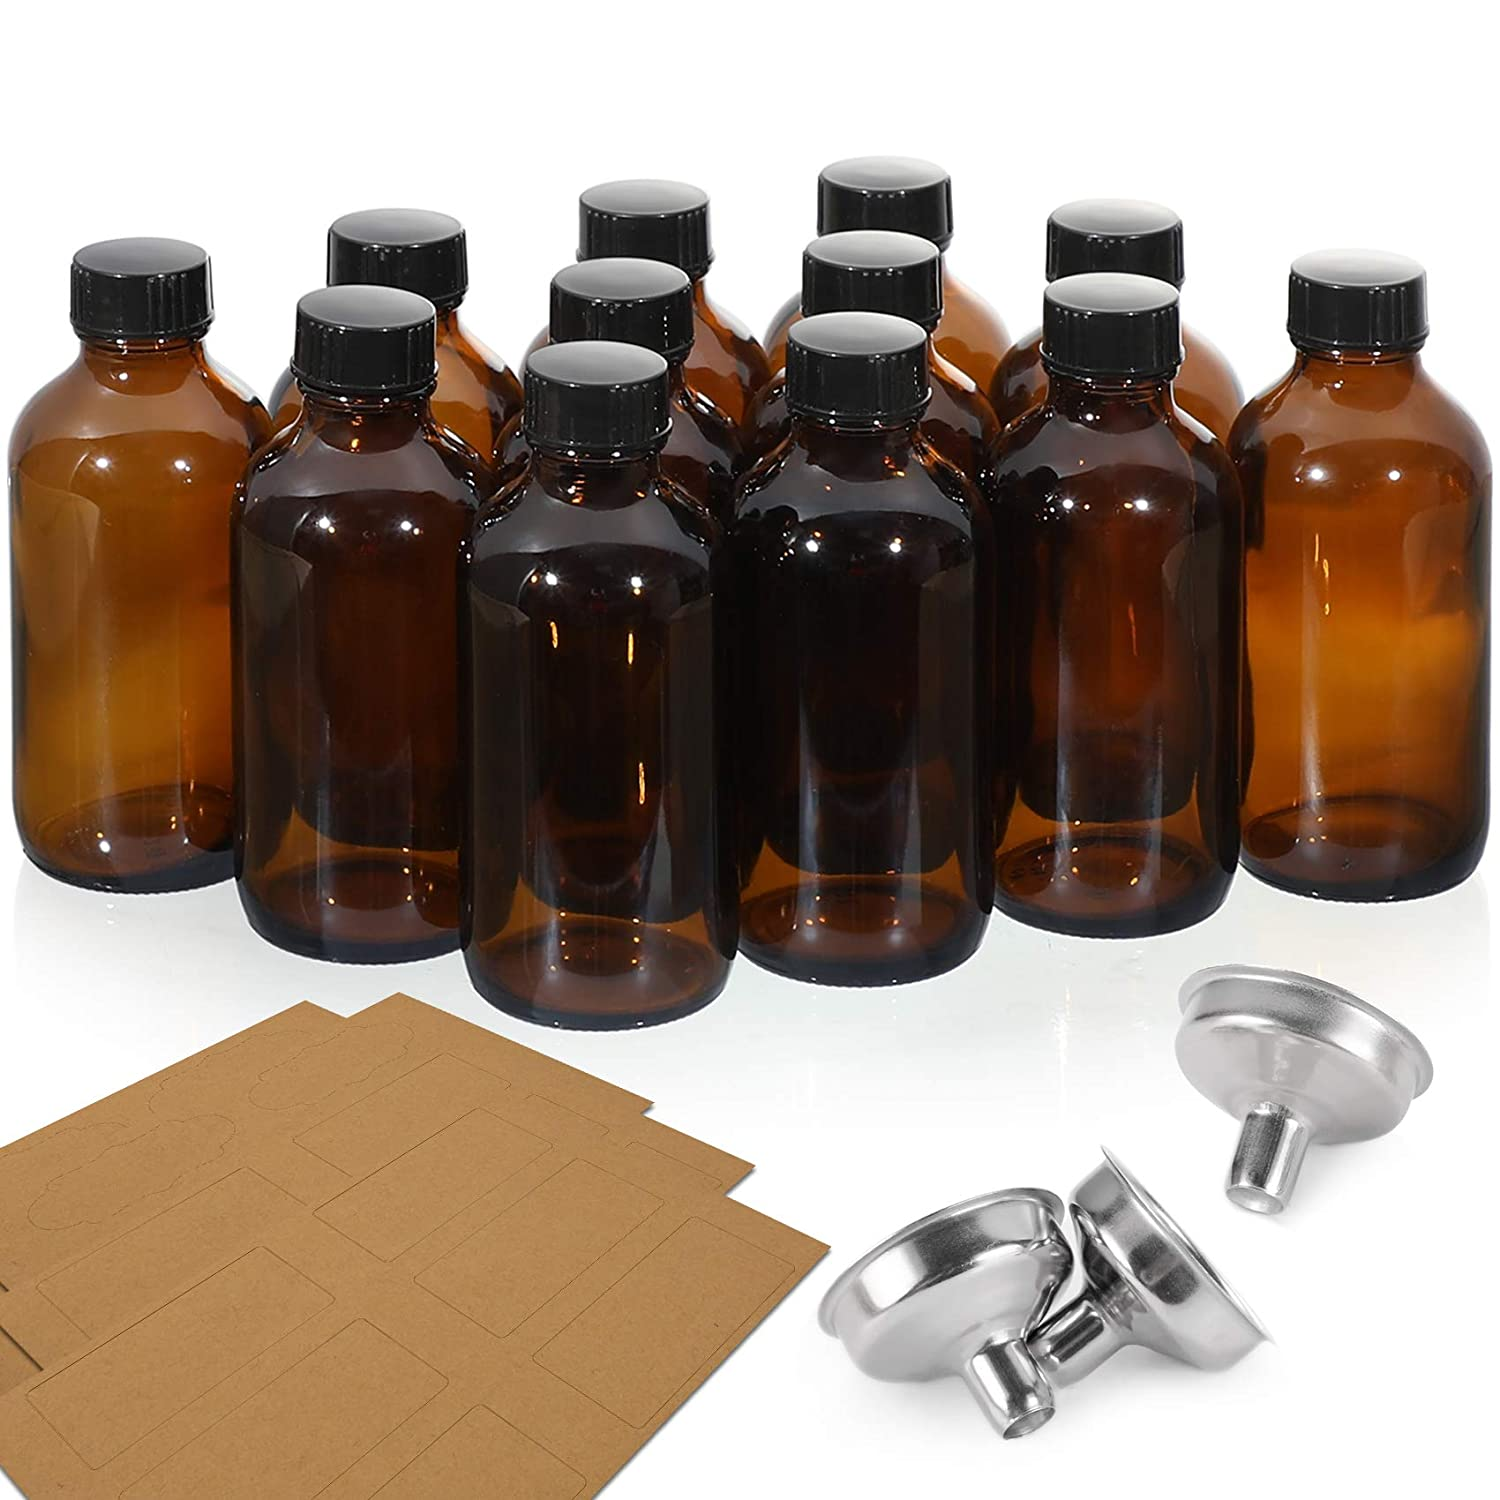 12 Pack, 4 OZ Glass Amber Bottles with Black Poly Cone Cap & 3 Stainless Steel Funnels & 12 Labels - 120ml Boston Round Sample Bottles, Brown Glass Apothecary Bottles